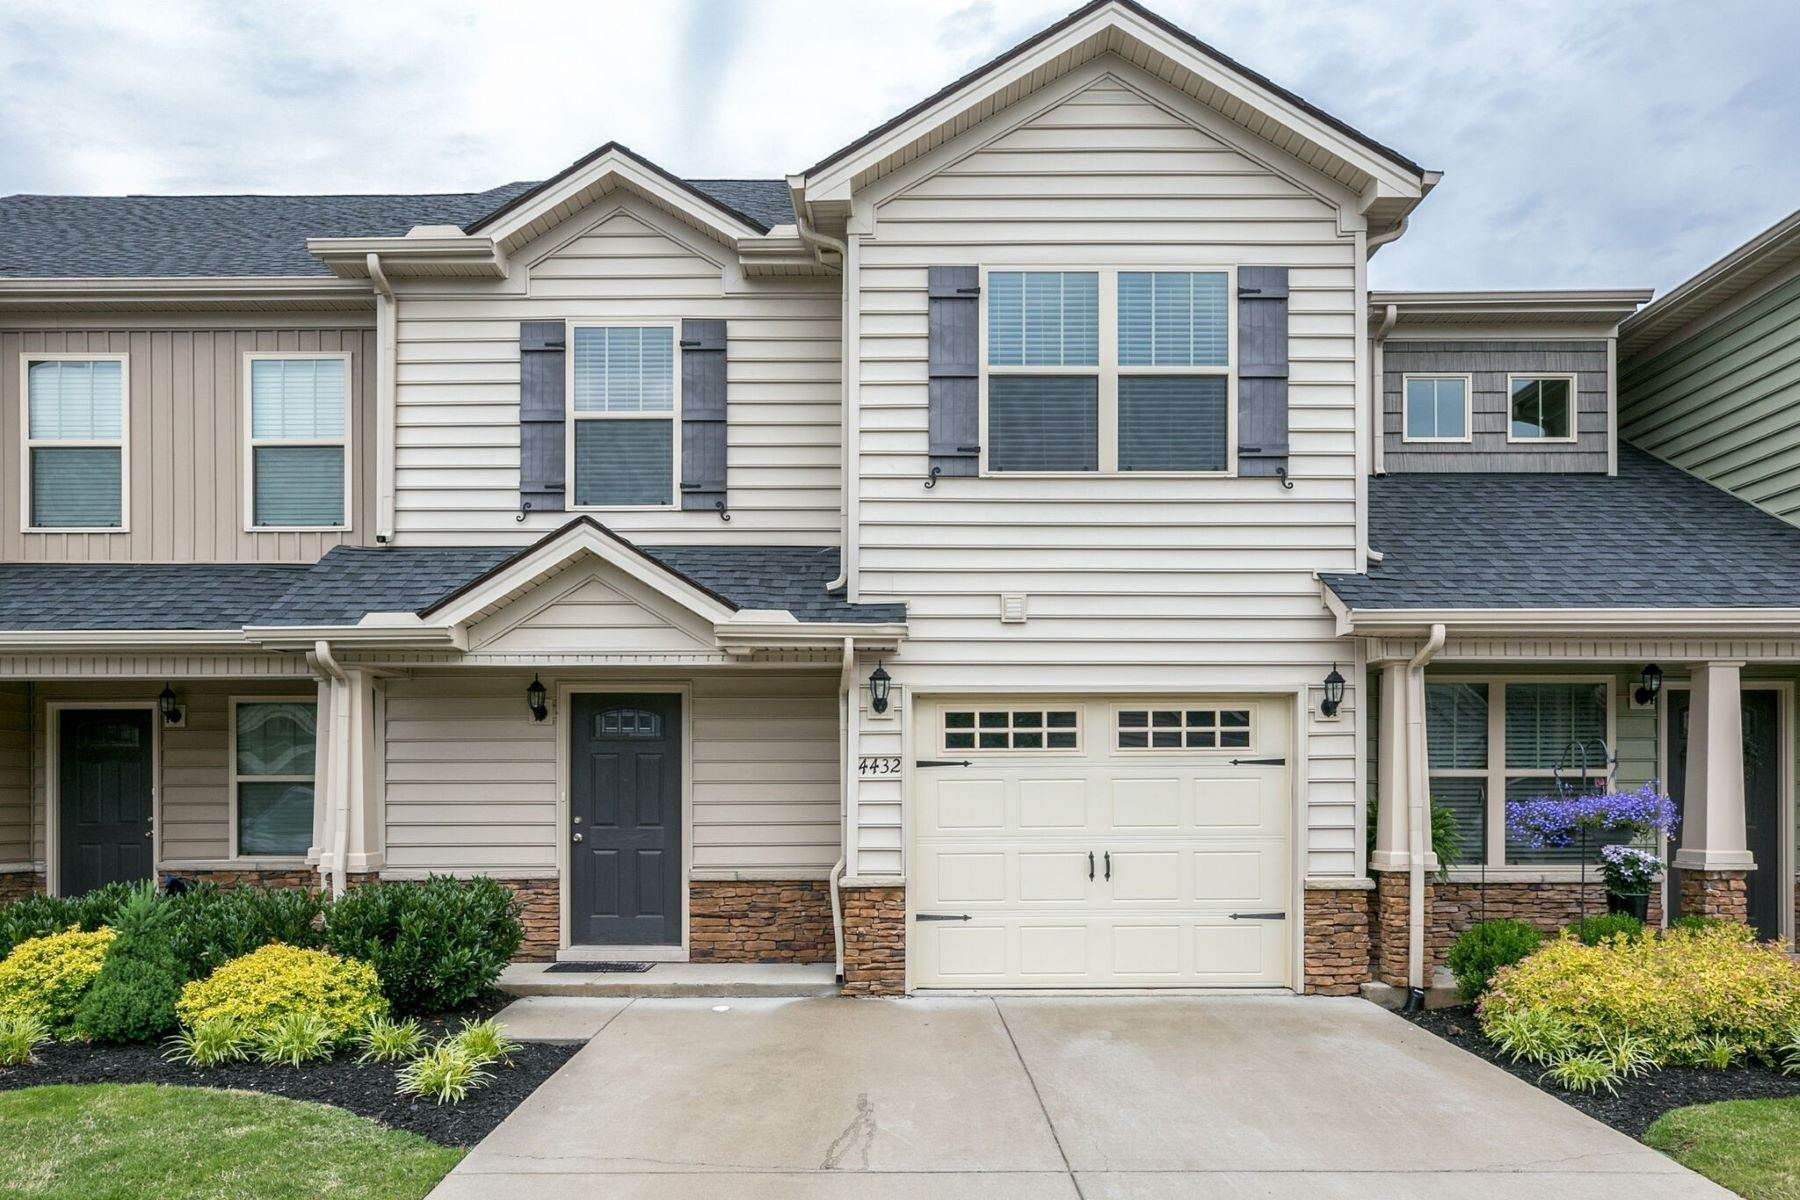 townhouses for Sale at 4432 Prometheus Way, Murfreesboro, TN 37128 4432 Prometheus Way Murfreesboro, Tennessee 37128 United States